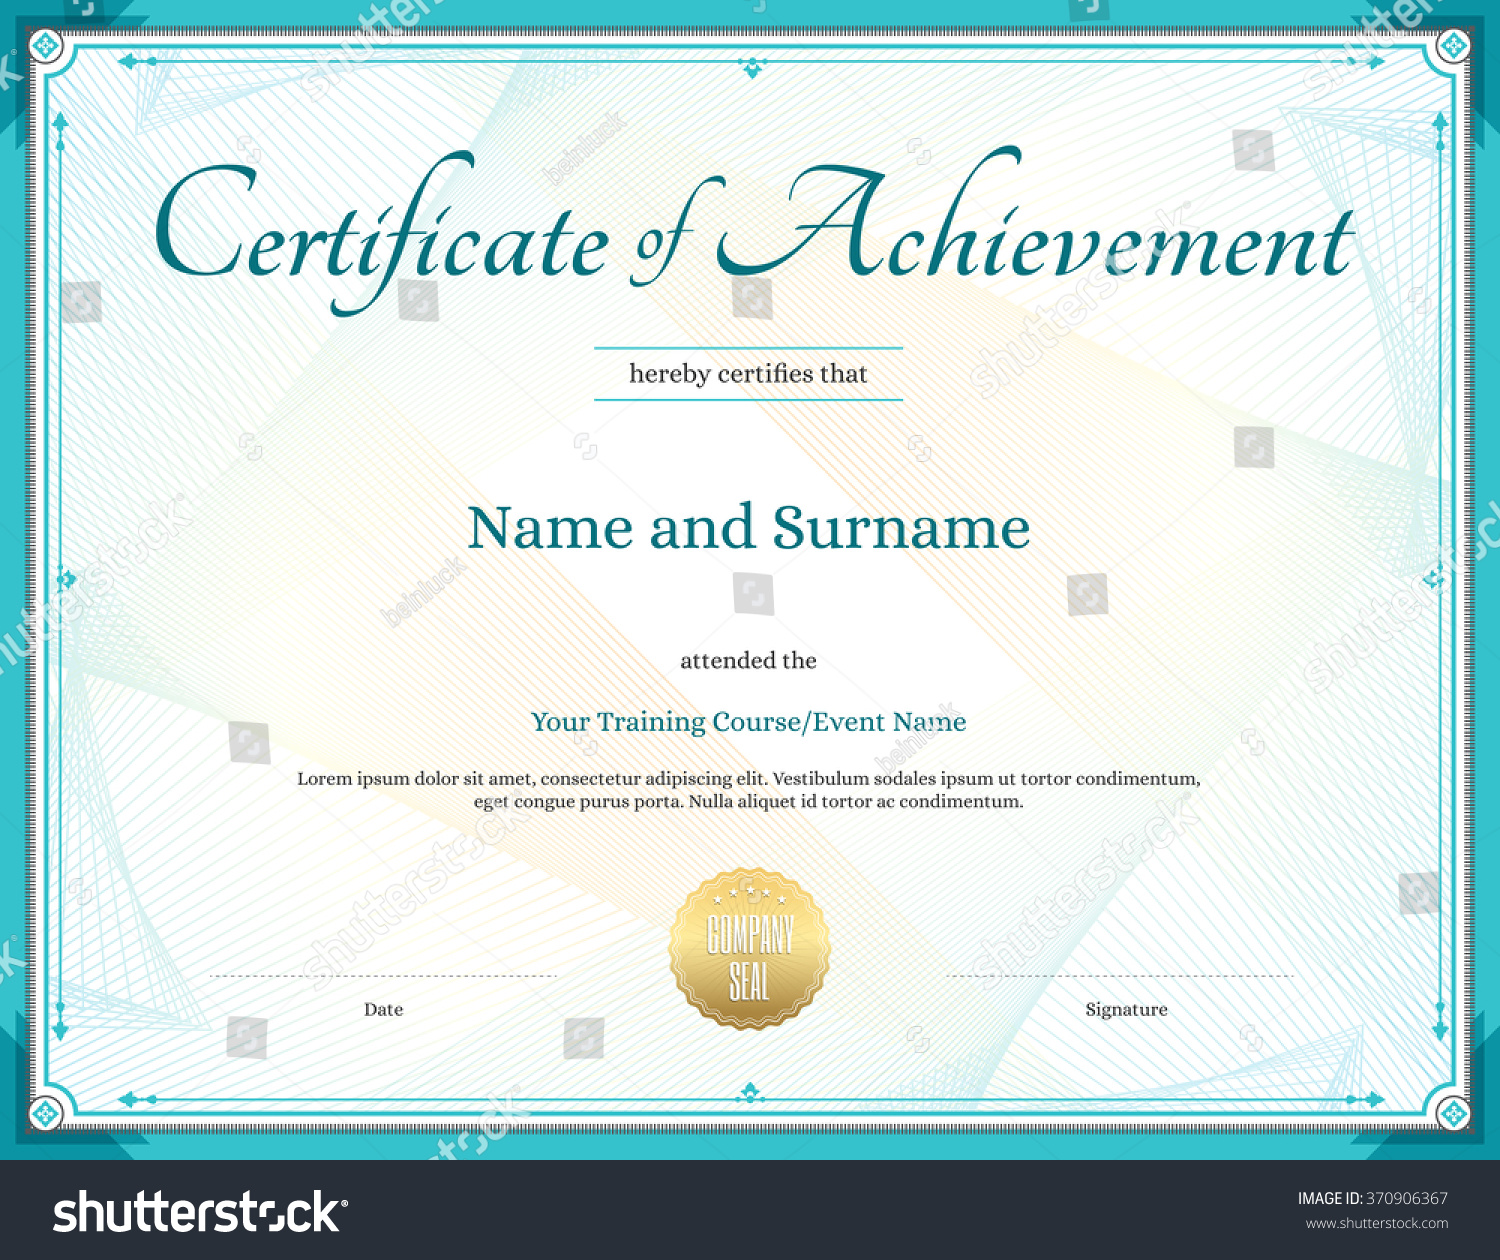 template for a certificate of achievement - certificate of achievement template in vector for